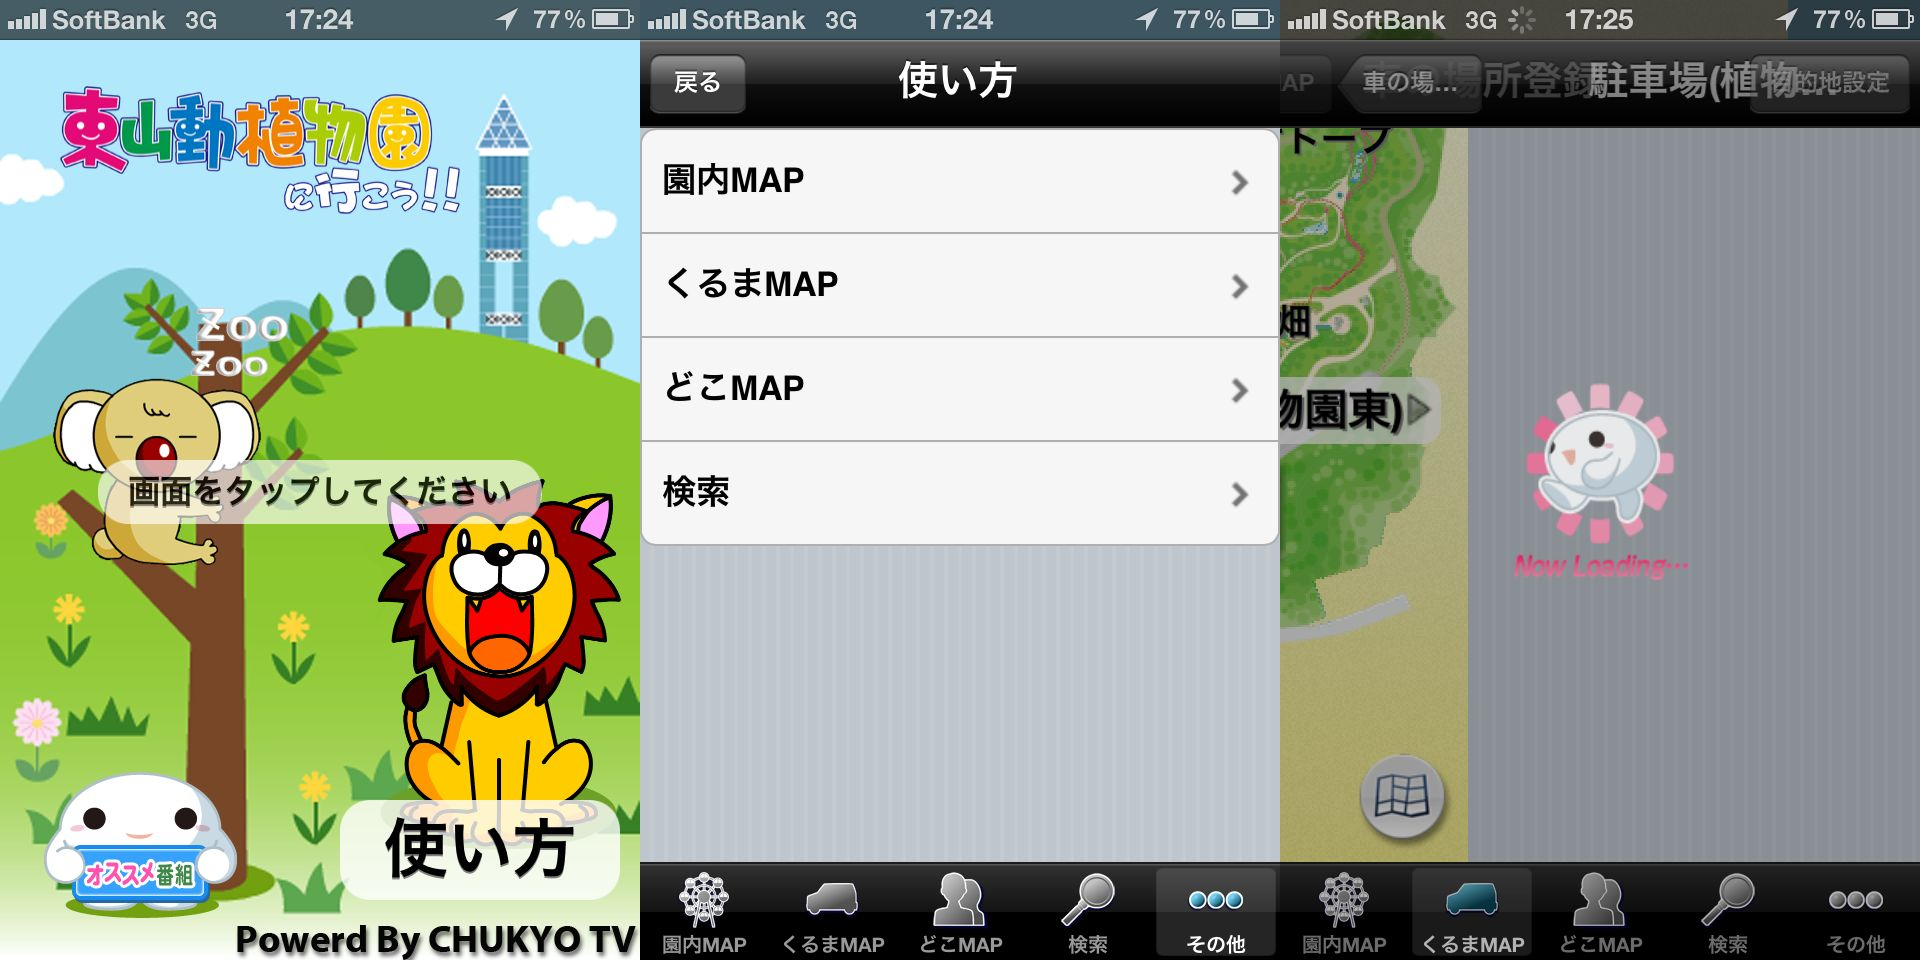 iPhoneアプリ「東山動植物園」 Powered by 中京テレビ。たぶん2012年の頃のスクリーンショット。 https://t.co/53p3AcHzK8